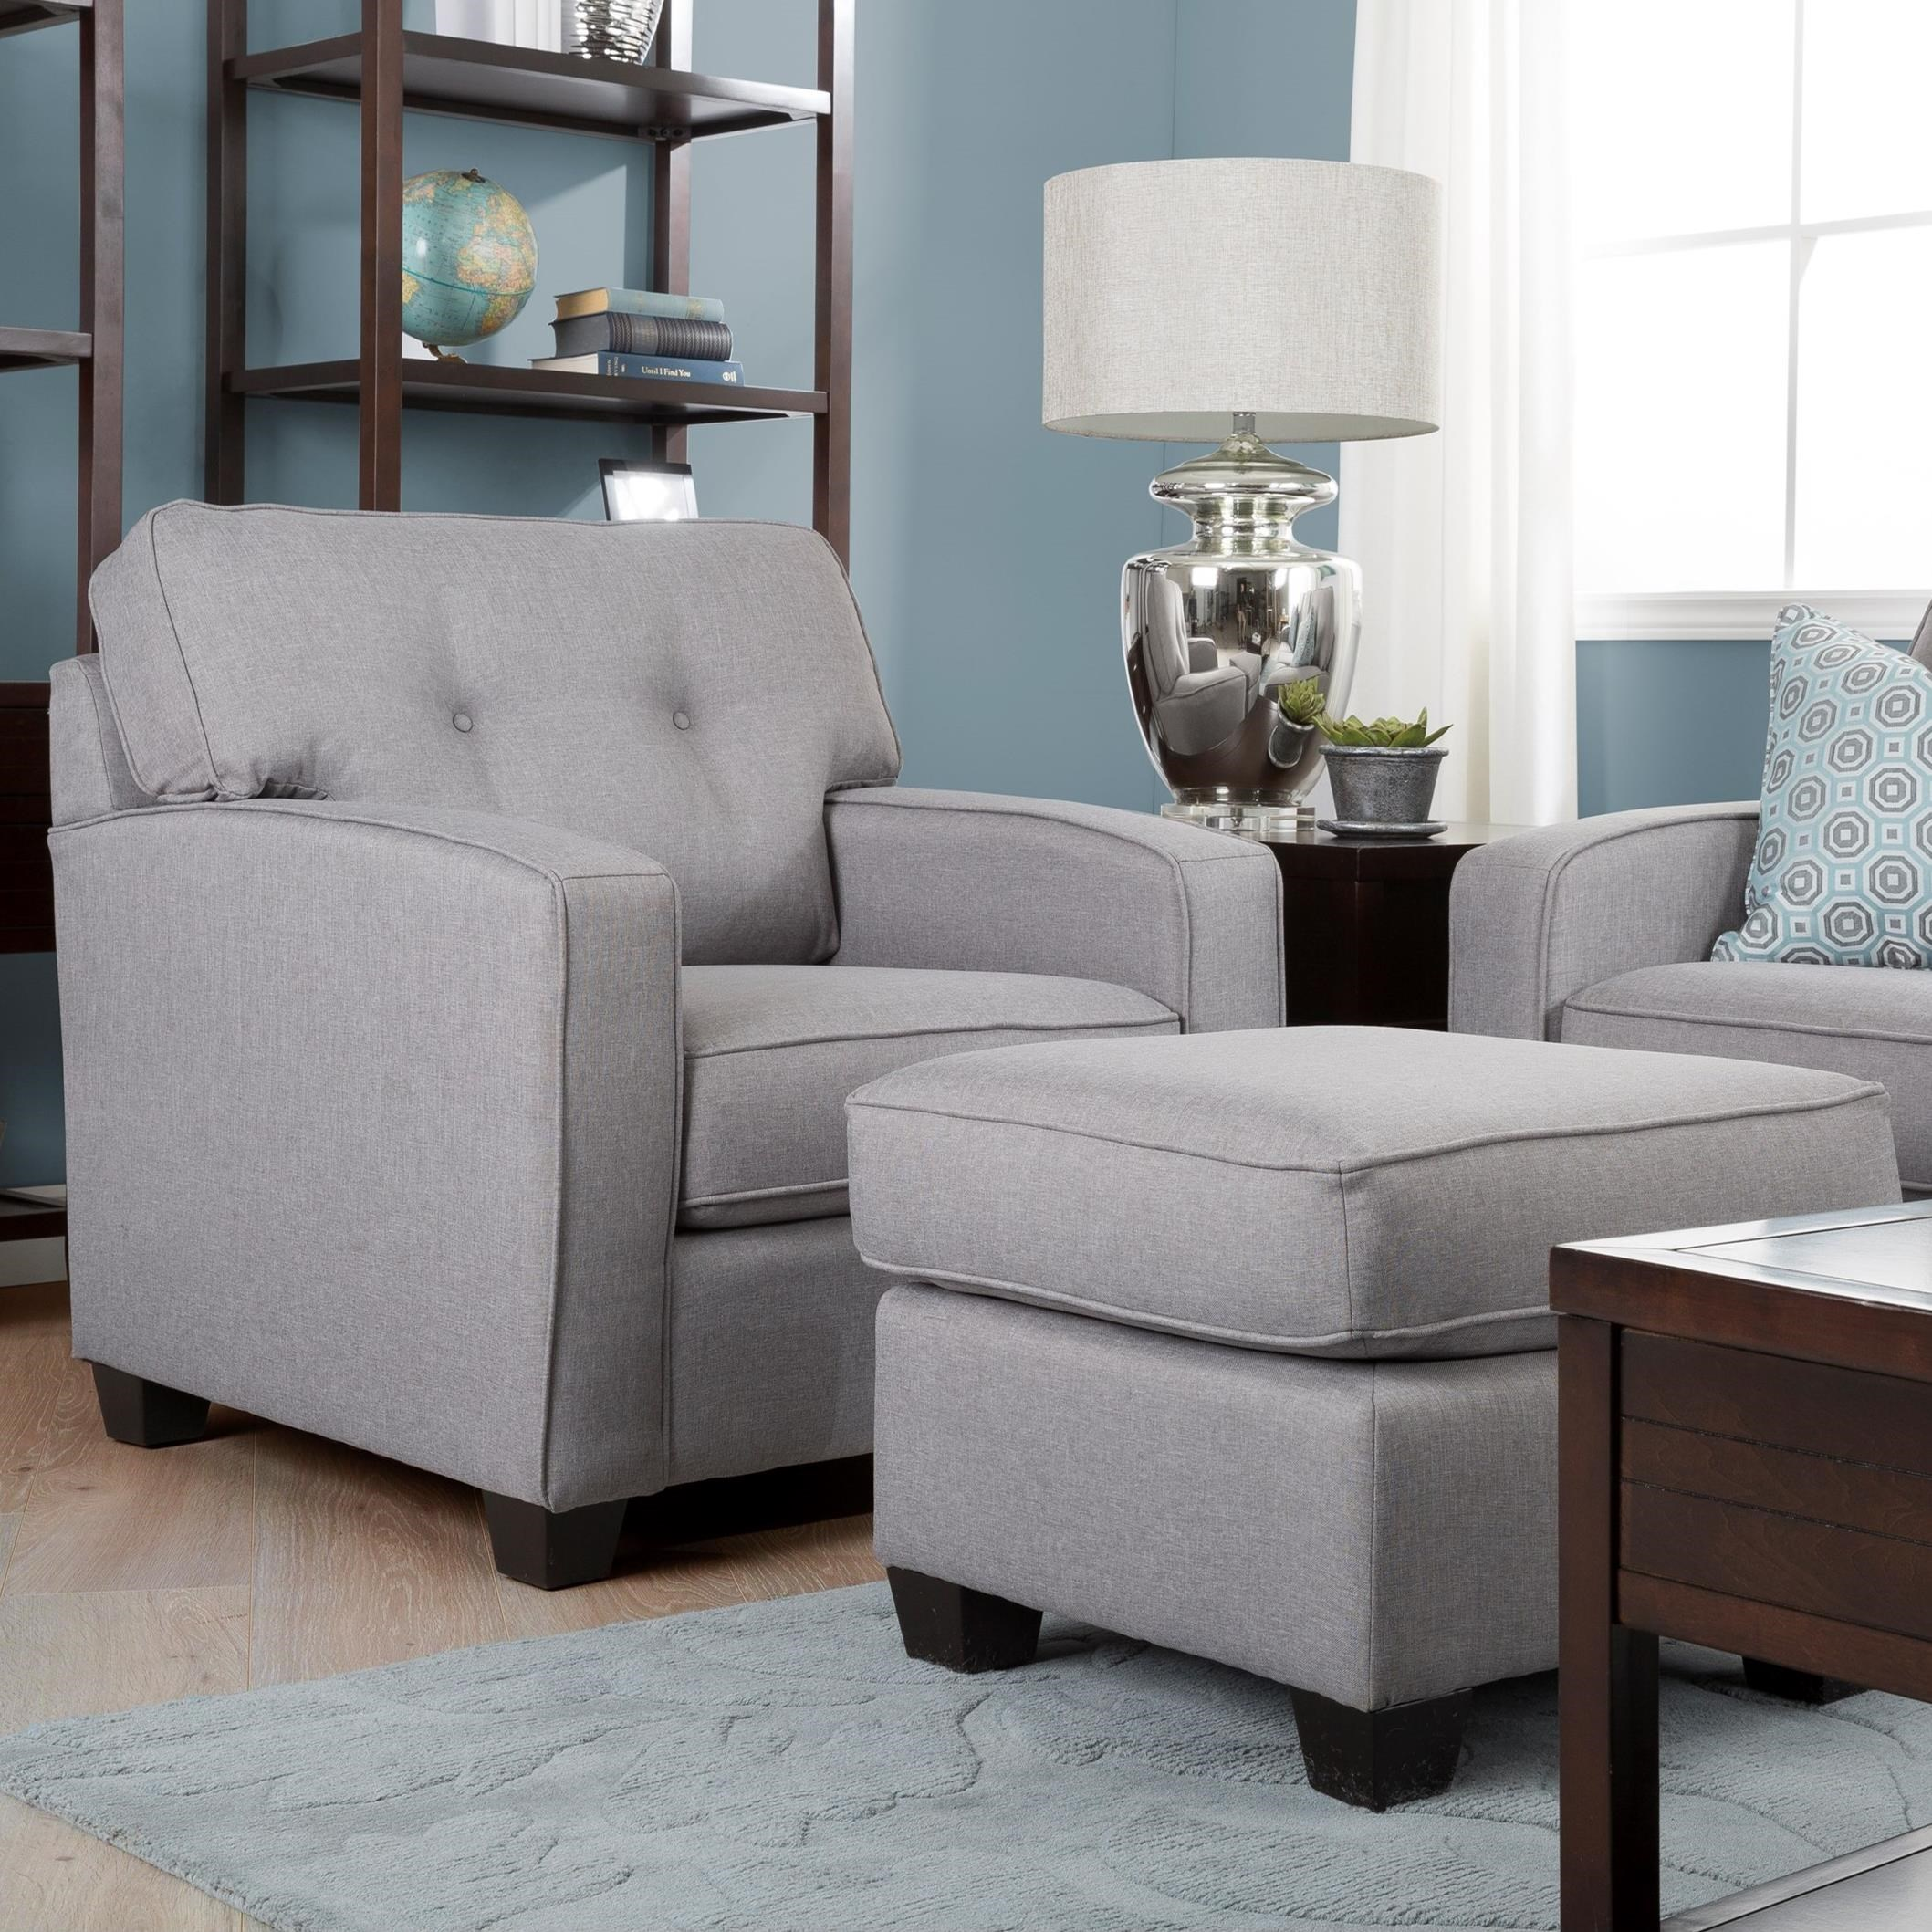 2298 Series Chair and Ottoman Set by Decor-Rest at Johnny Janosik